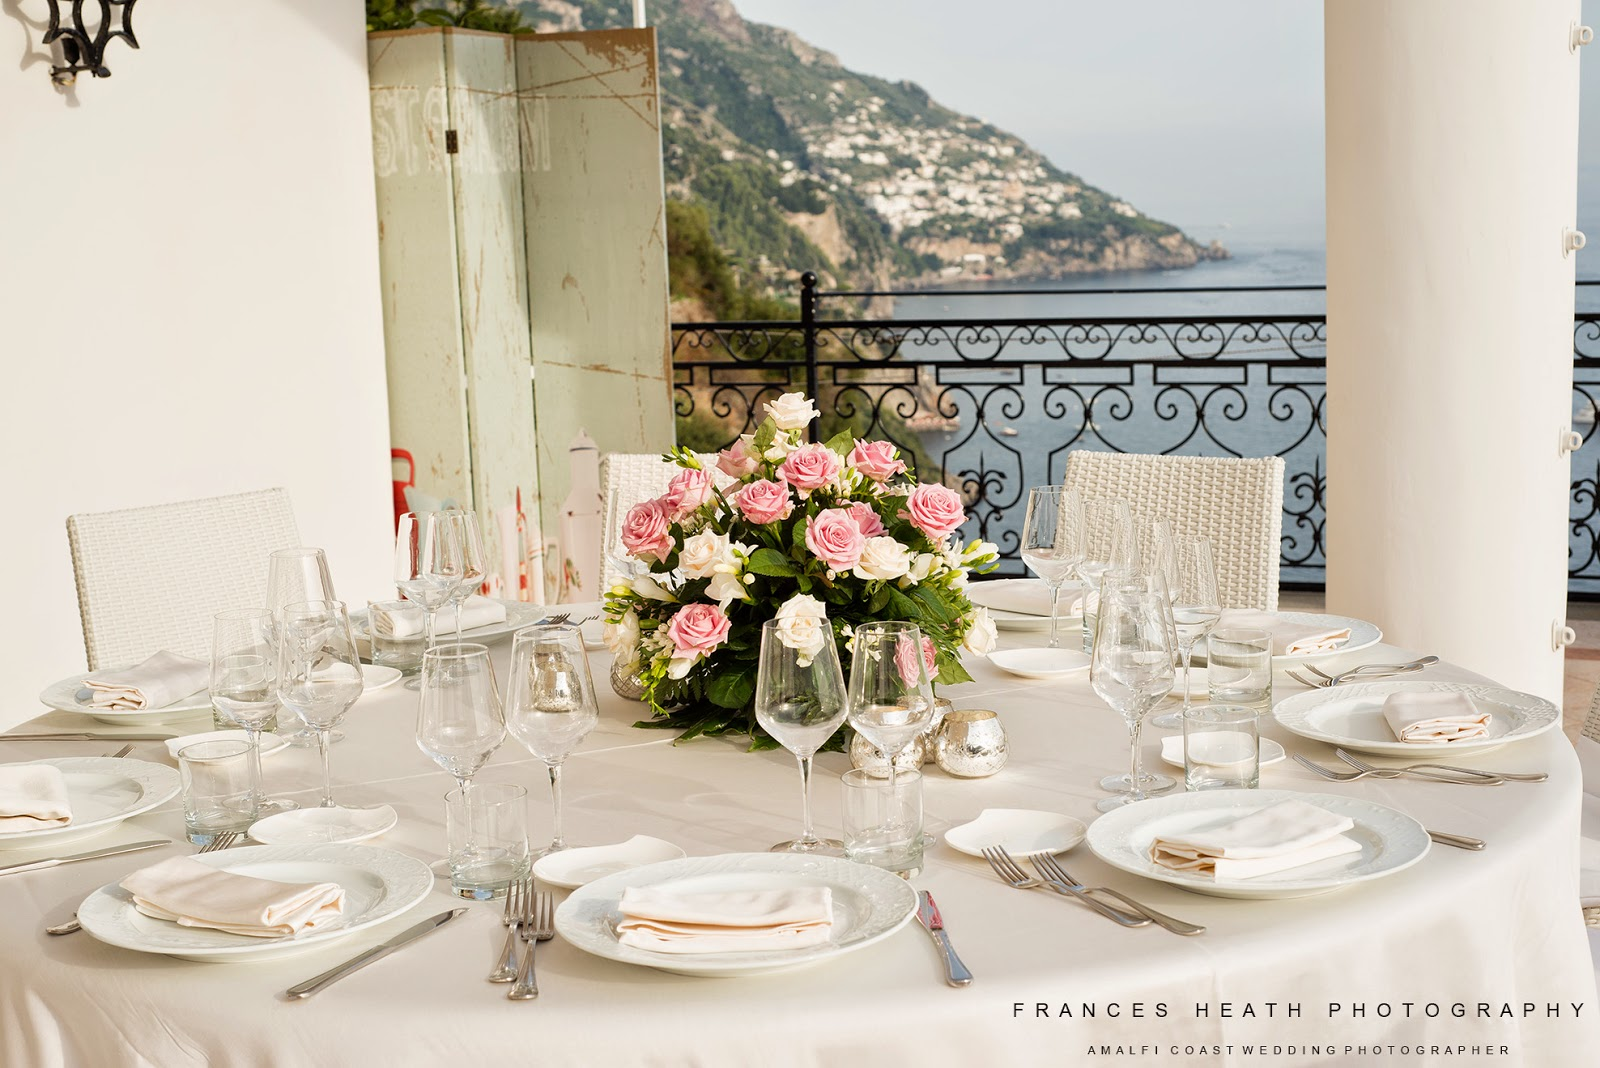 Wedding table decorations at Villa Oliviero